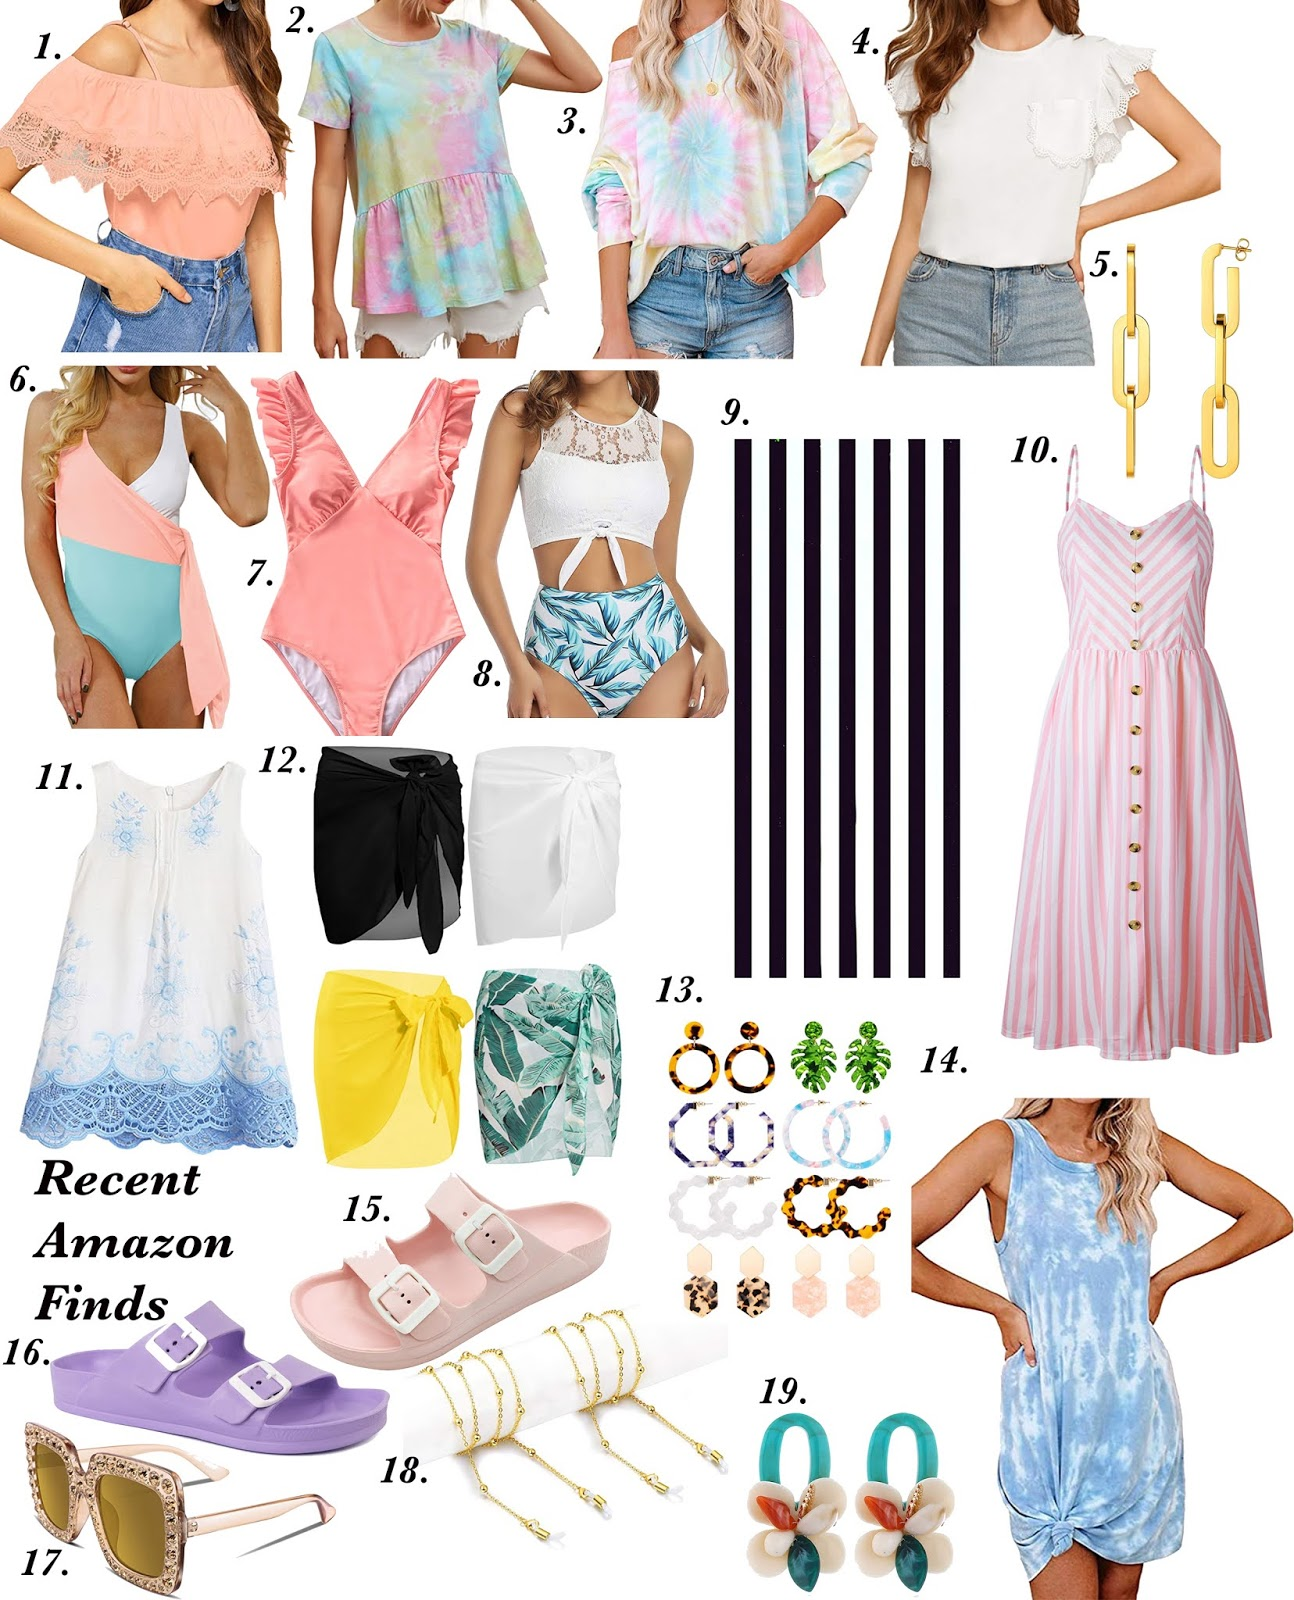 Recent Amazon Finds - Something Delightful Blog #AmazonFinds #AmazonFashion #summerstyle #beachvacay #affordablefashion